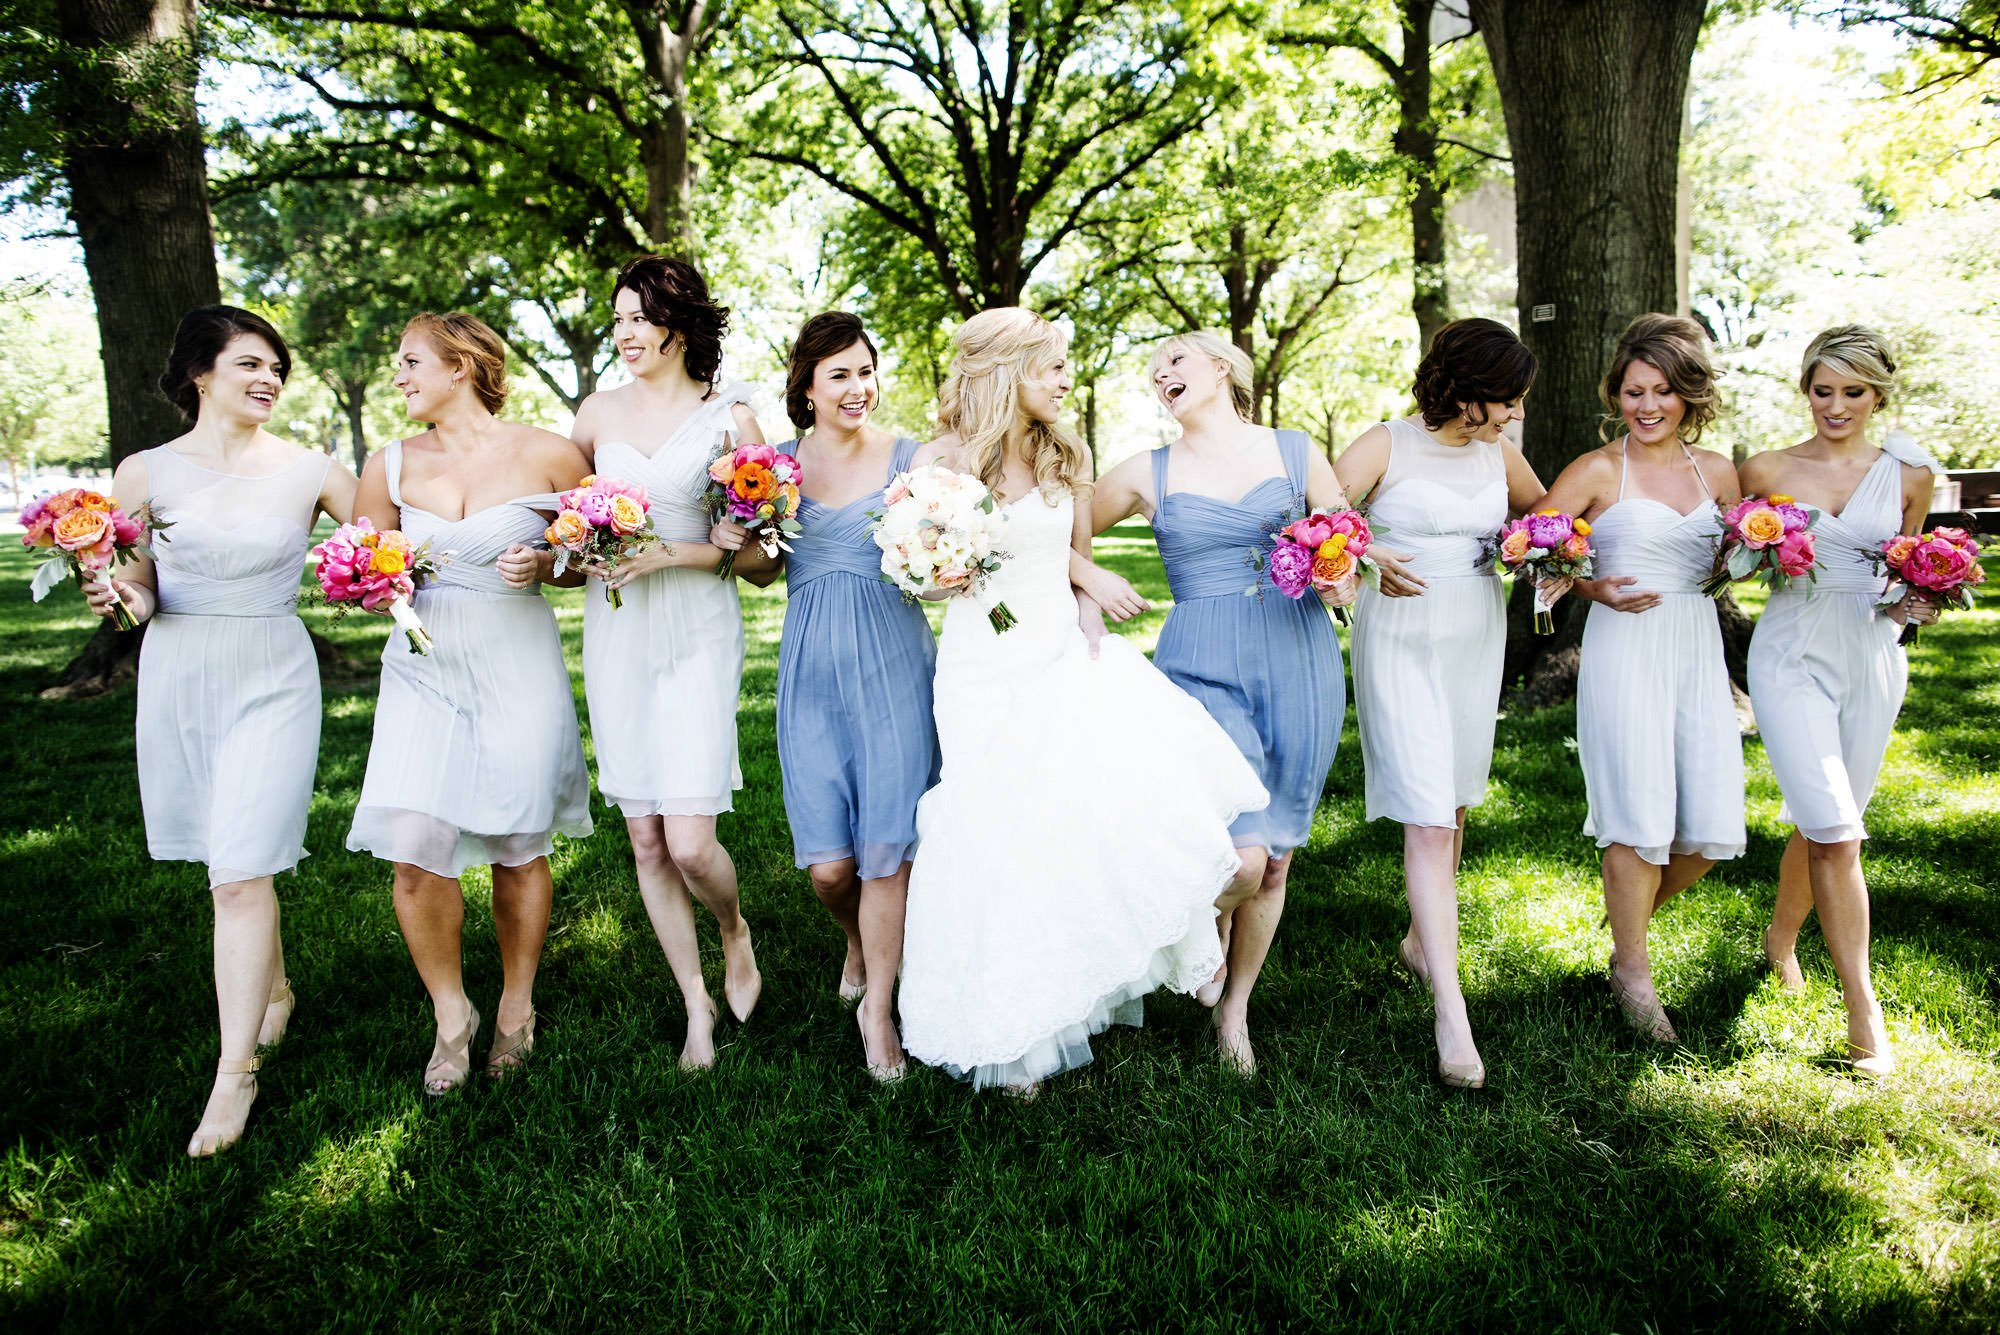 The bridesmaids pose for a portrait in Upper Senate Park in Washington, DC.